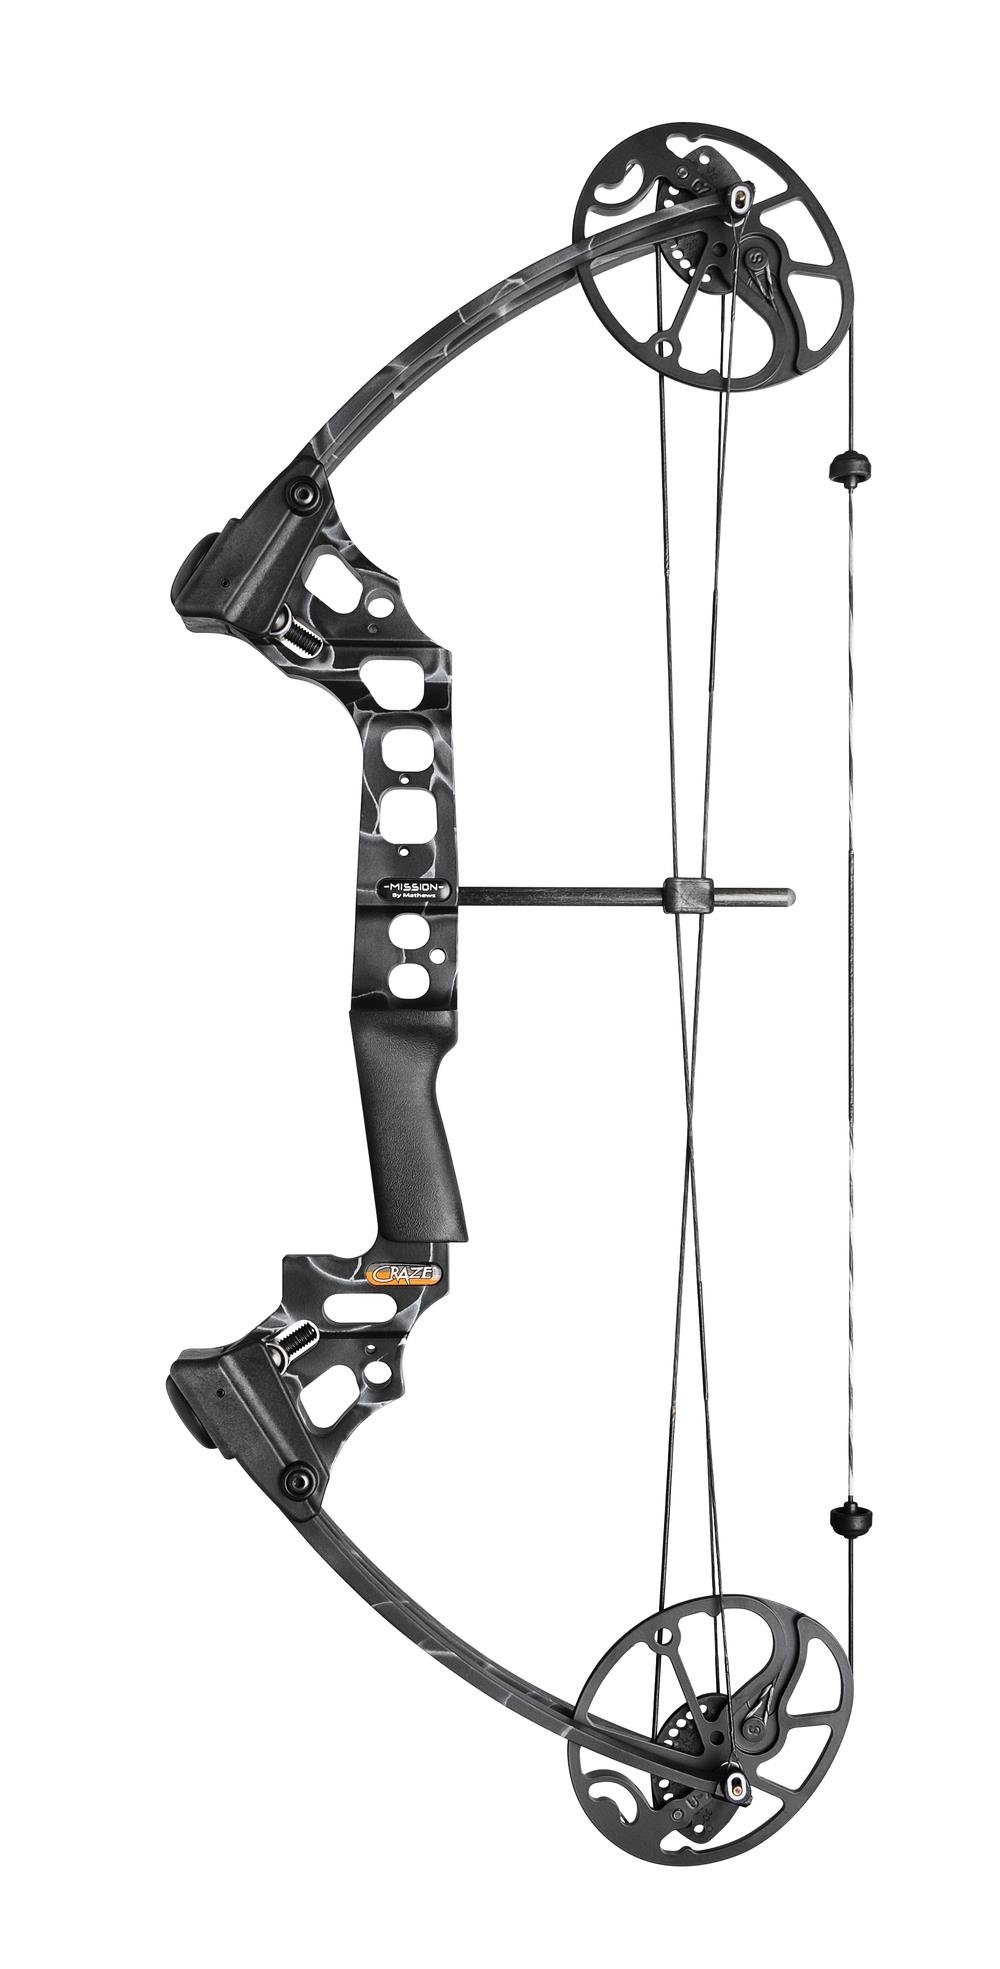 Mission Craze 2 Compound Bow